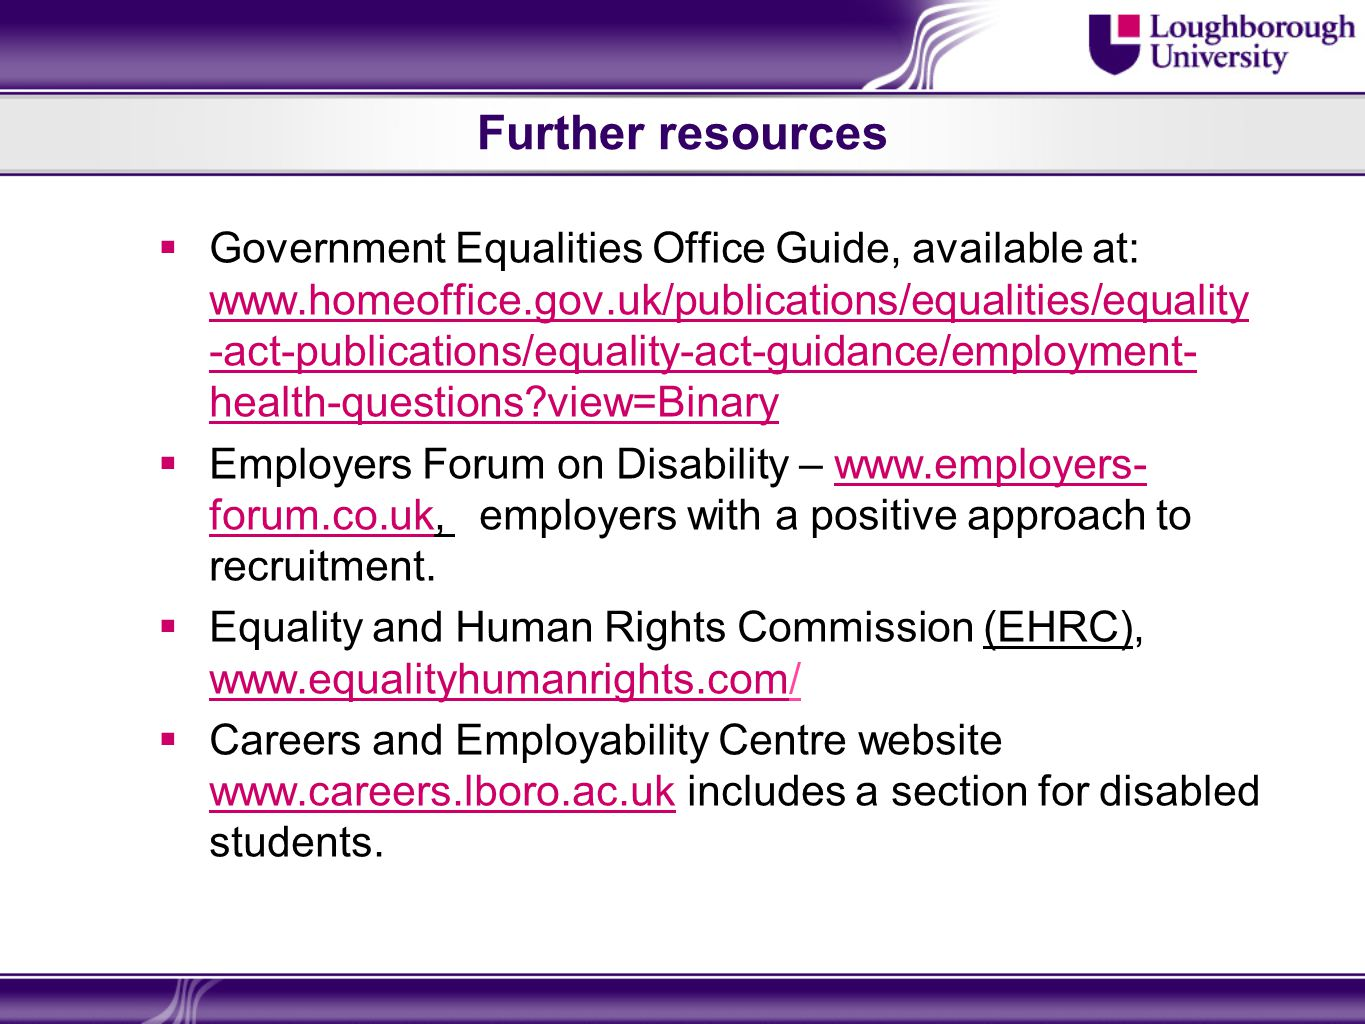 Further resources Government Equalities Office Guide, available at: www.homeoffice.gov.uk/publications/equalities/equality -act-publications/equality-act-guidance/employment- health-questions view=Binary www.homeoffice.gov.uk/publications/equalities/equality -act-publications/equality-act-guidance/employment- health-questions view=Binary Employers Forum on Disability – www.employers- forum.co.uk, employers with a positive approach to recruitment.www.employers- forum.co.uk Equality and Human Rights Commission (EHRC), www.equalityhumanrights.com/ www.equalityhumanrights.com Careers and Employability Centre website www.careers.lboro.ac.uk includes a section for disabled students.